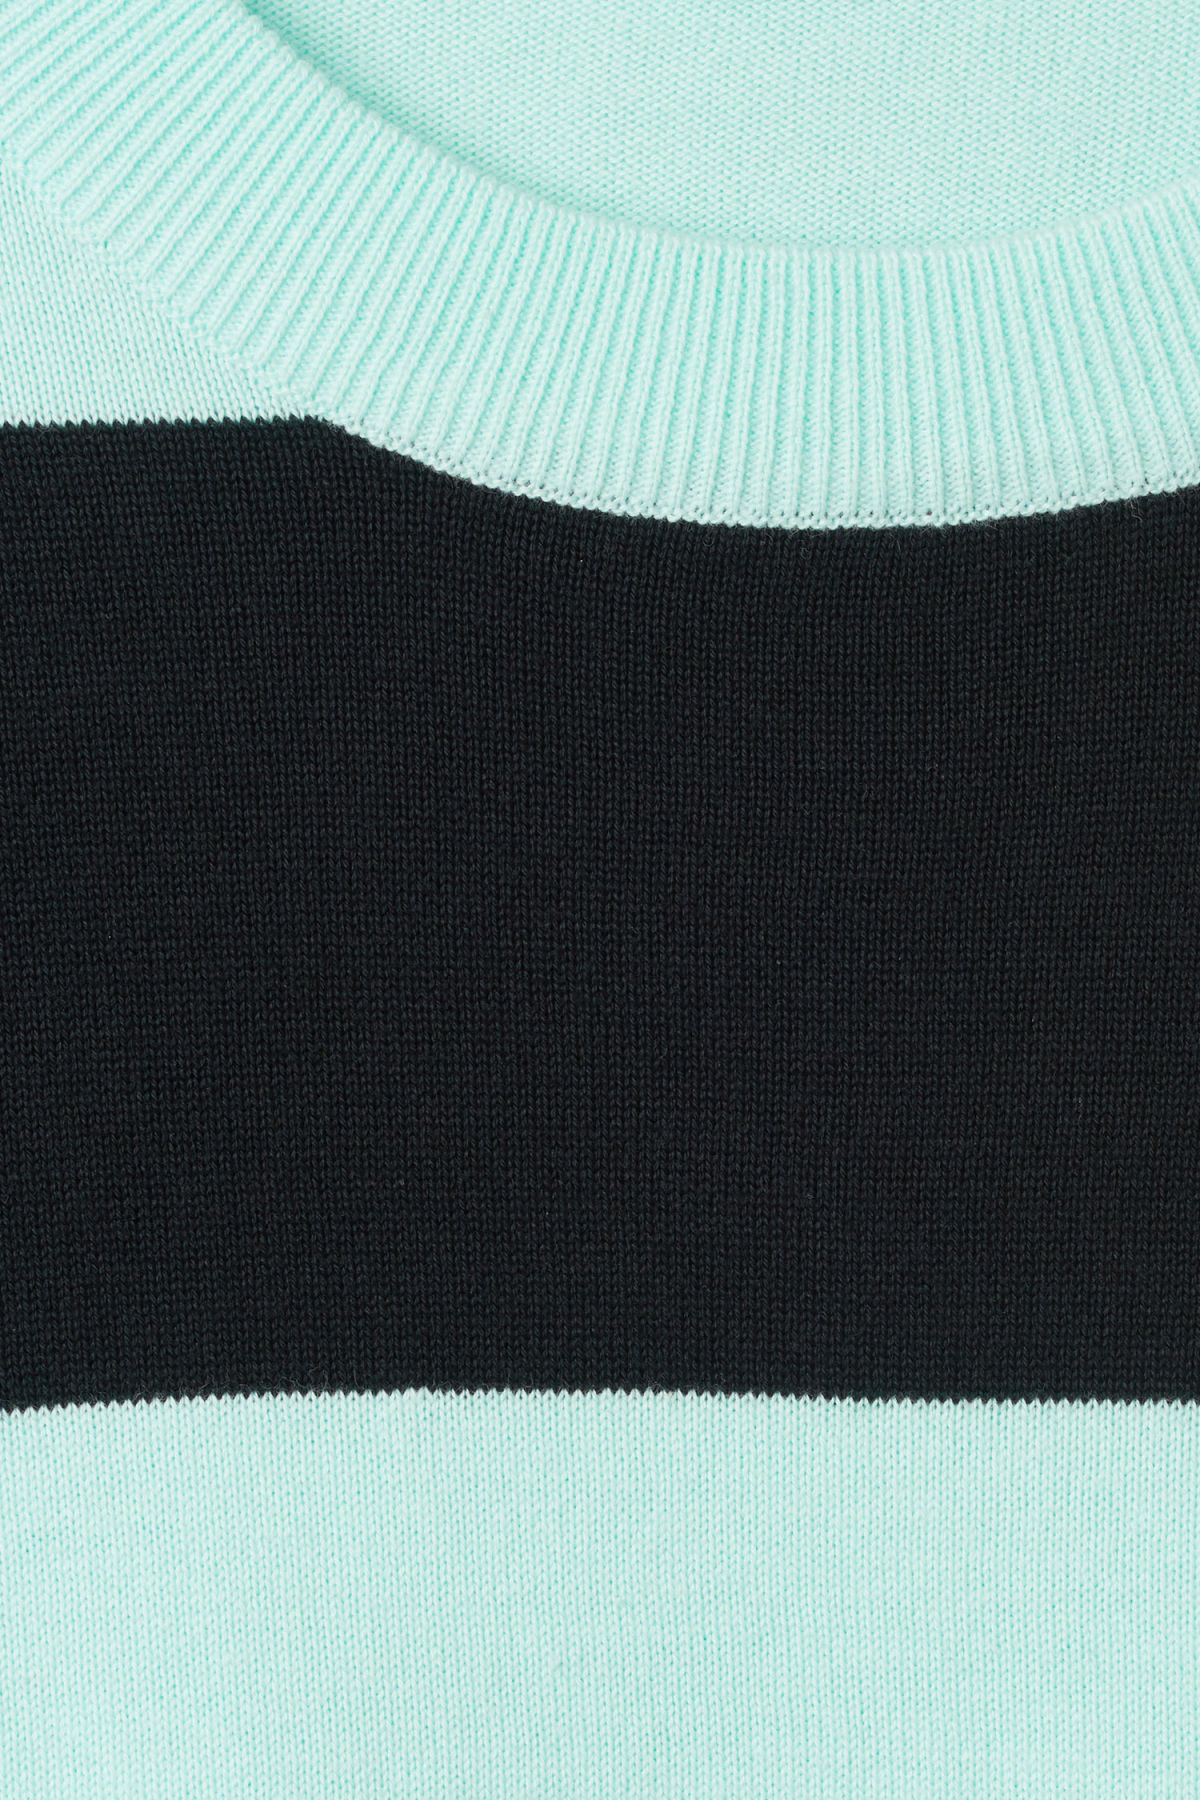 Detailed image of Weekday pyramid sweater in turquoise